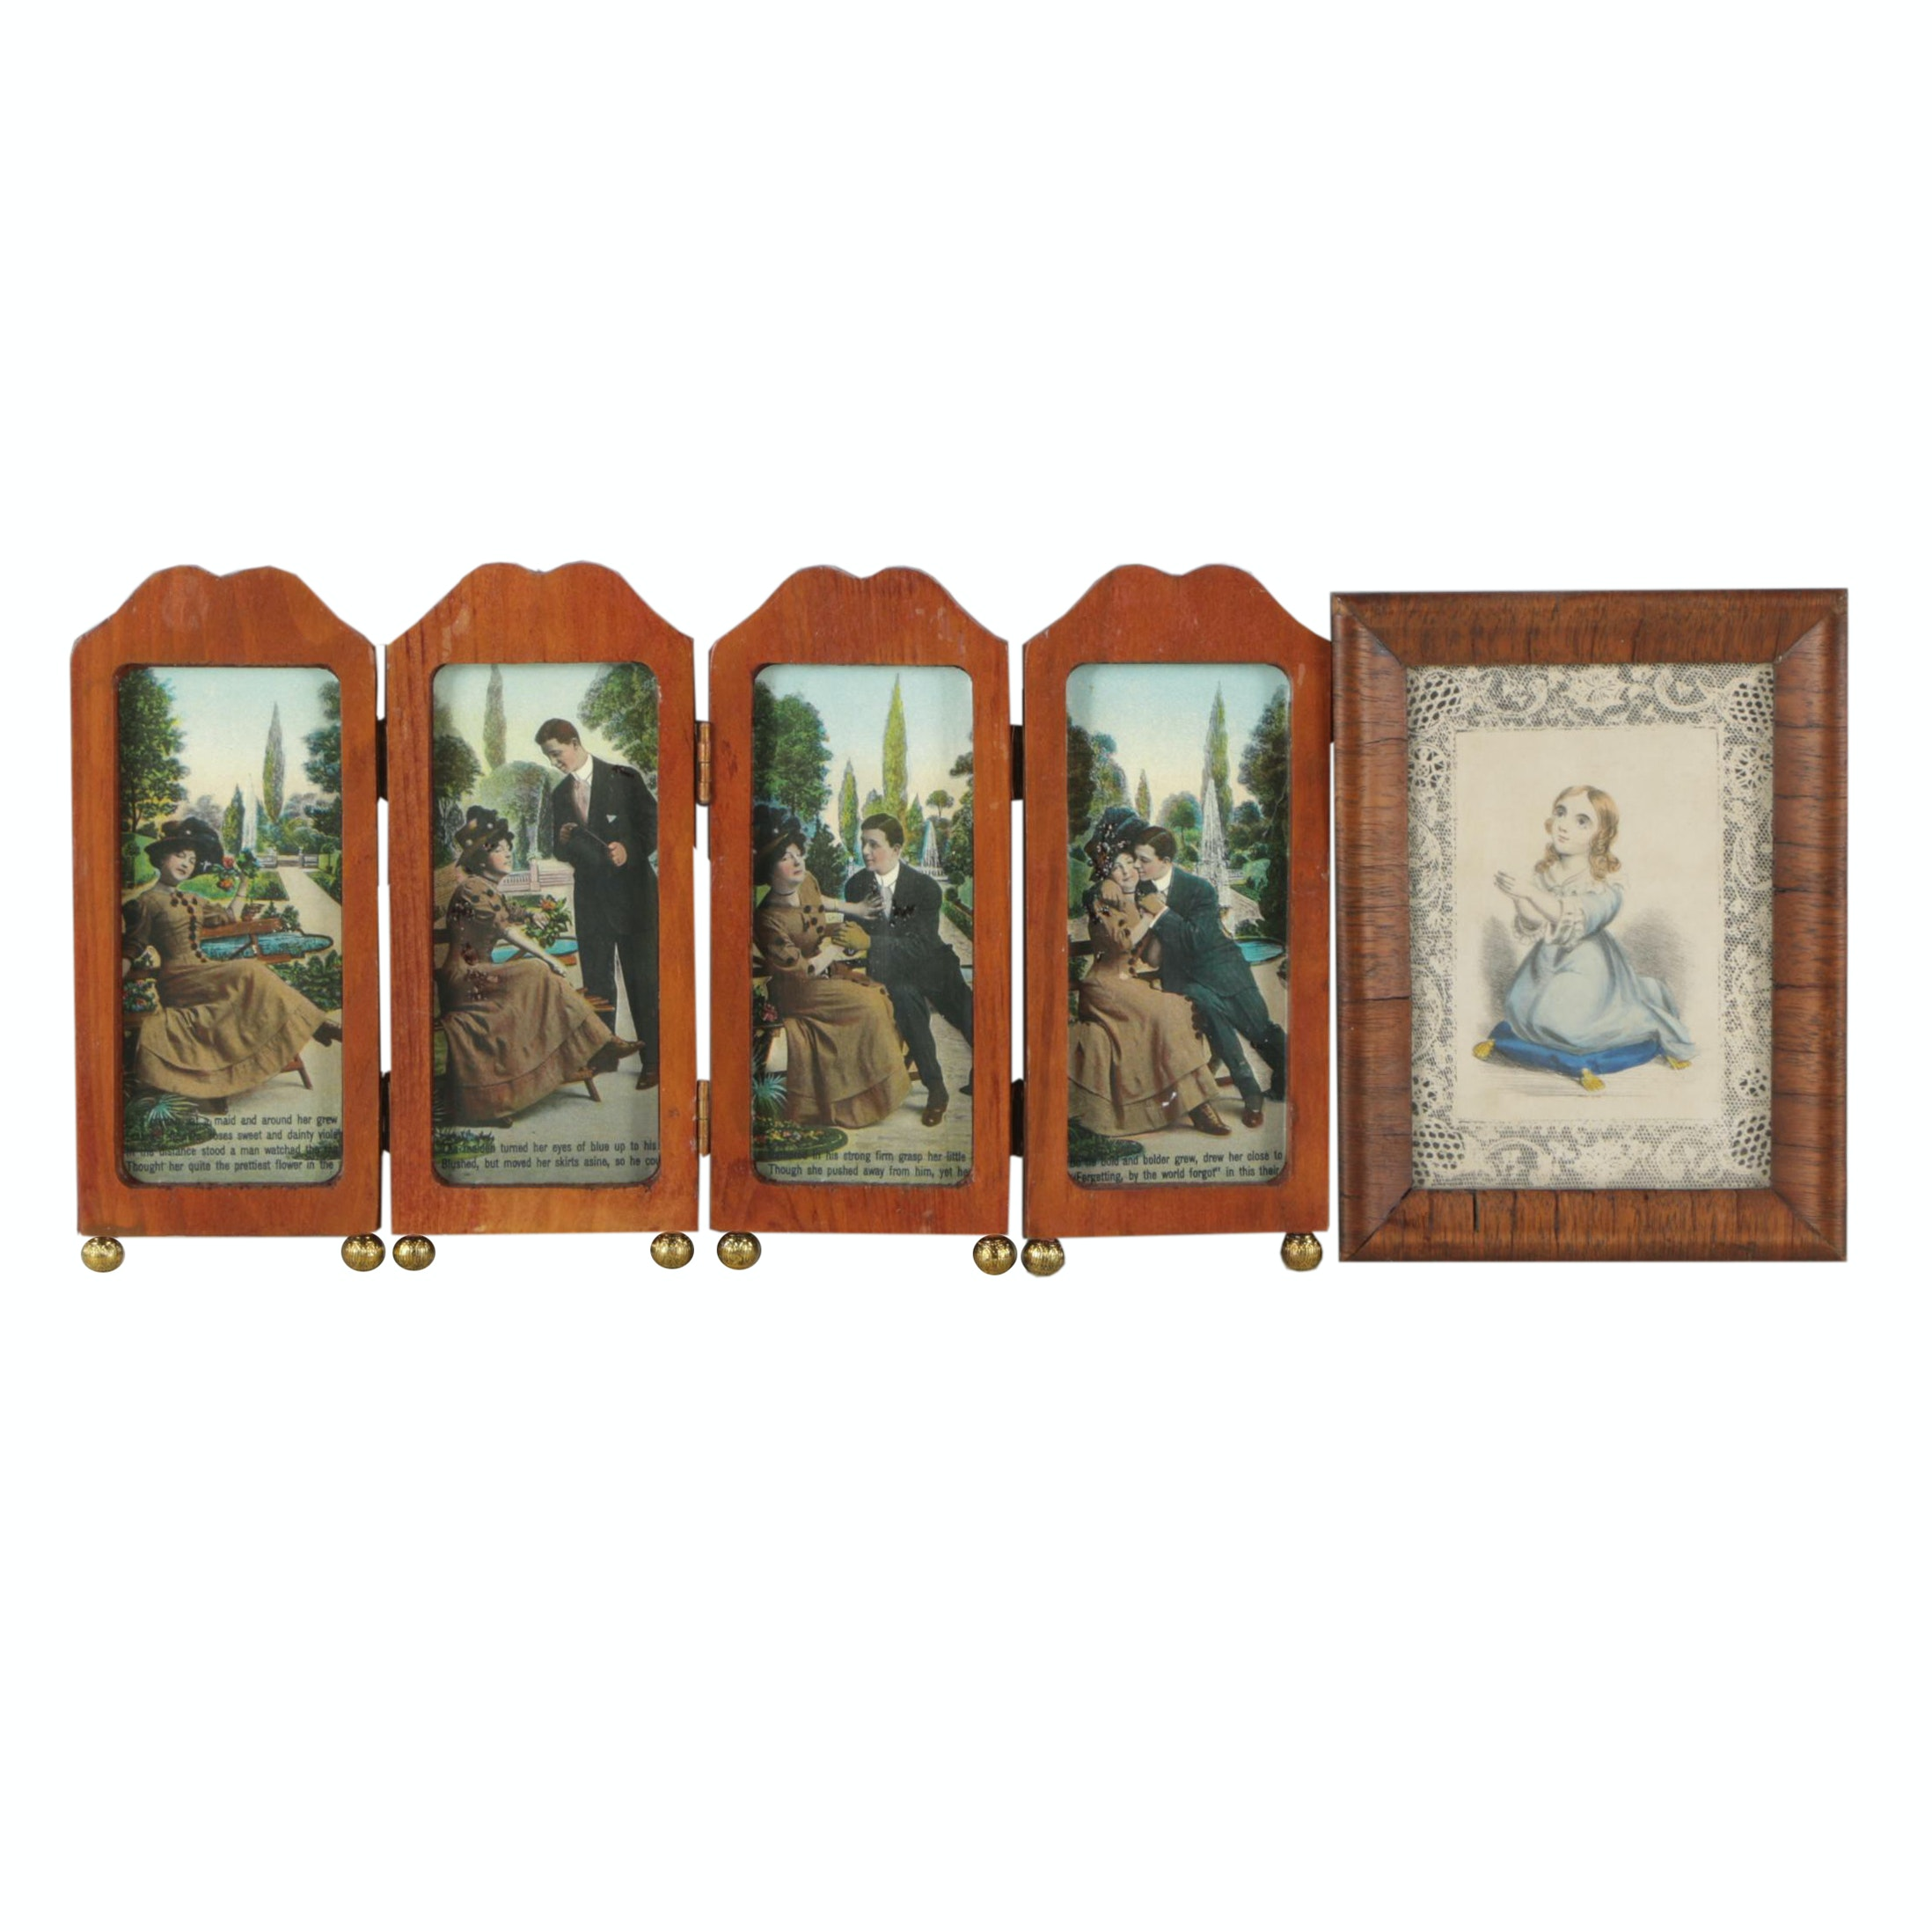 Hand-Colored Lithograph and Offset Lithographs in Folding Frame